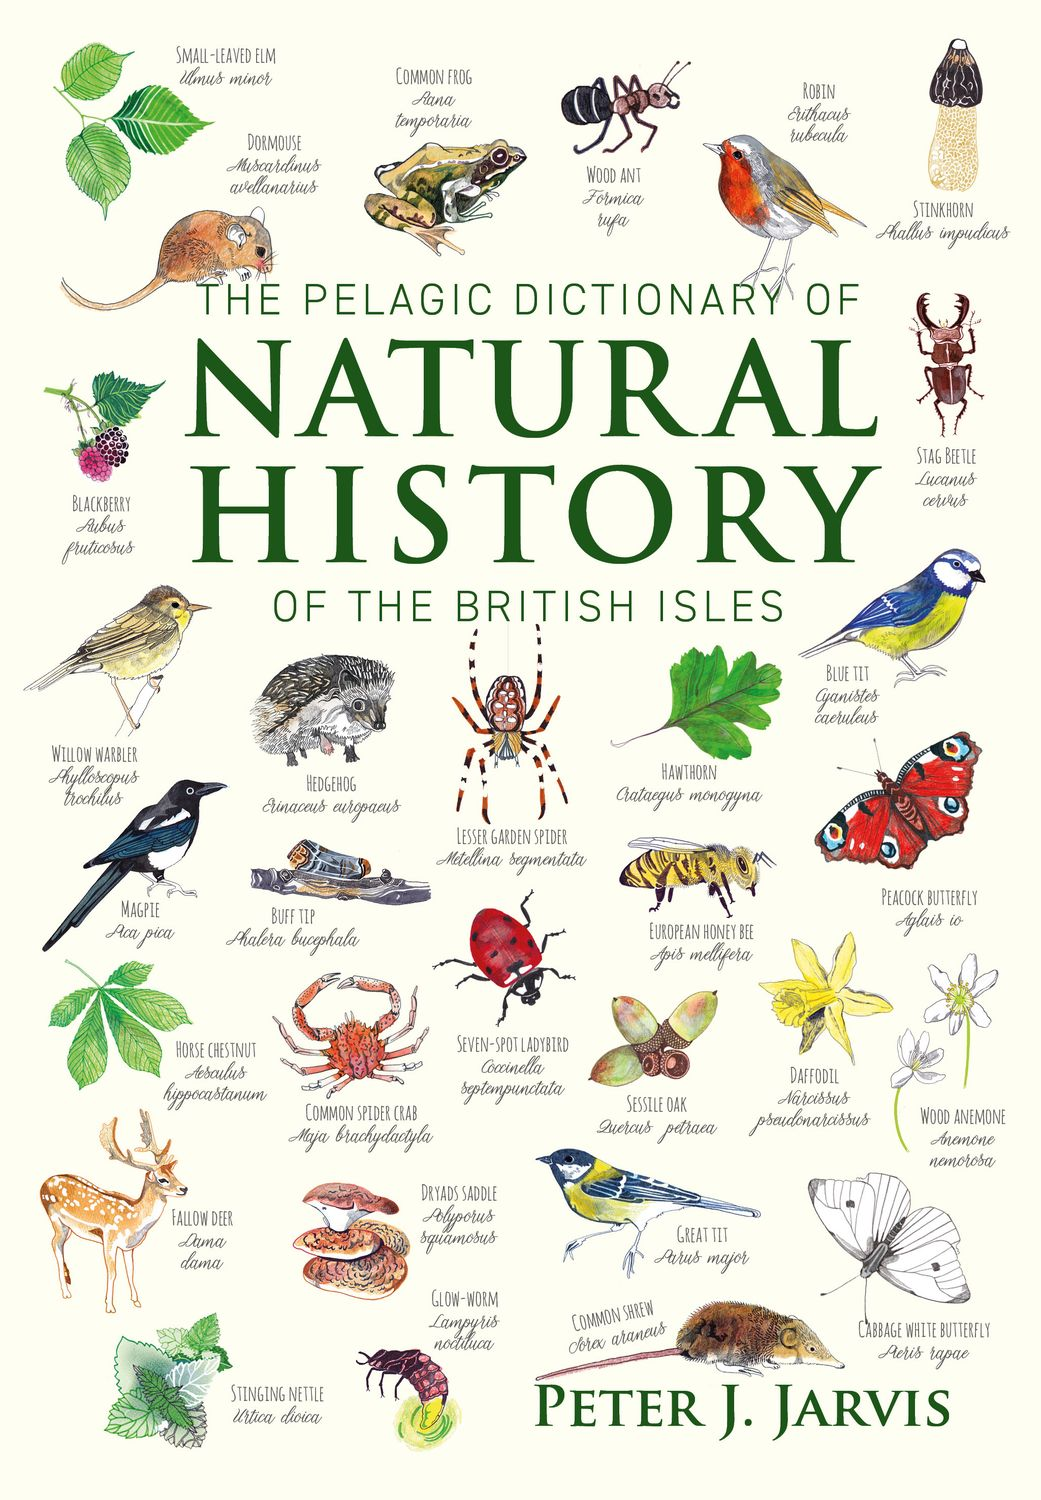 The Pelagic Dictionary of Natural History of the British Isles - Pelagic Publishing